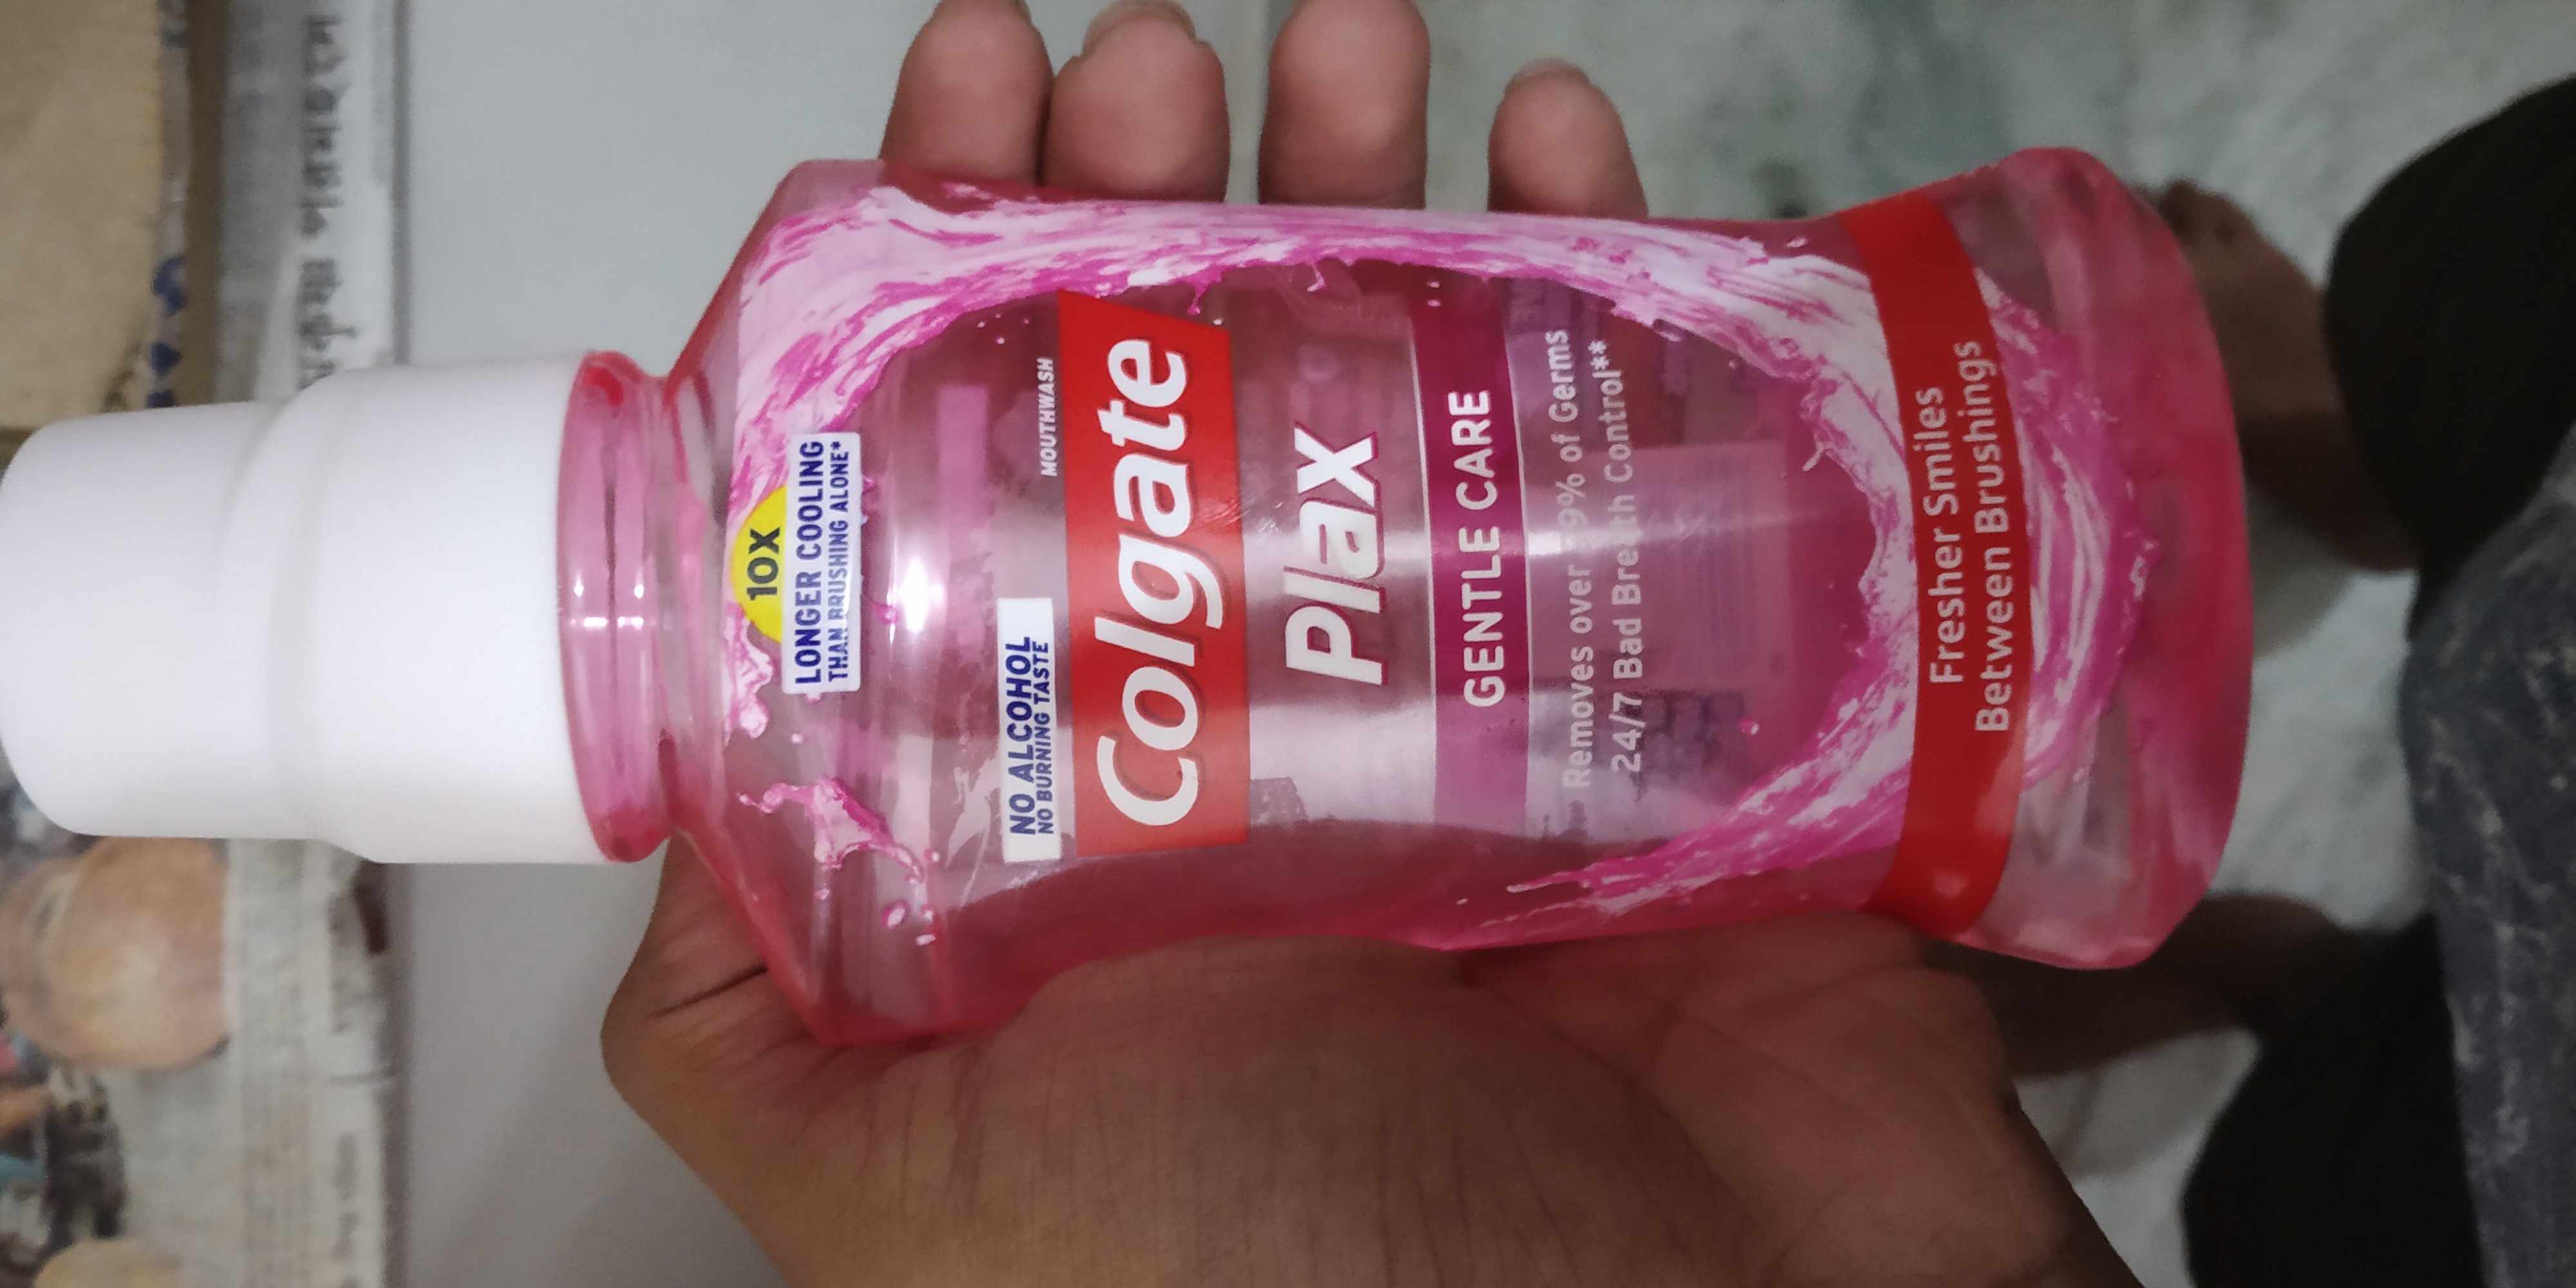 Colgate Plax Complete Care Mouthwash-Complete Mouthwash-By mitshu98